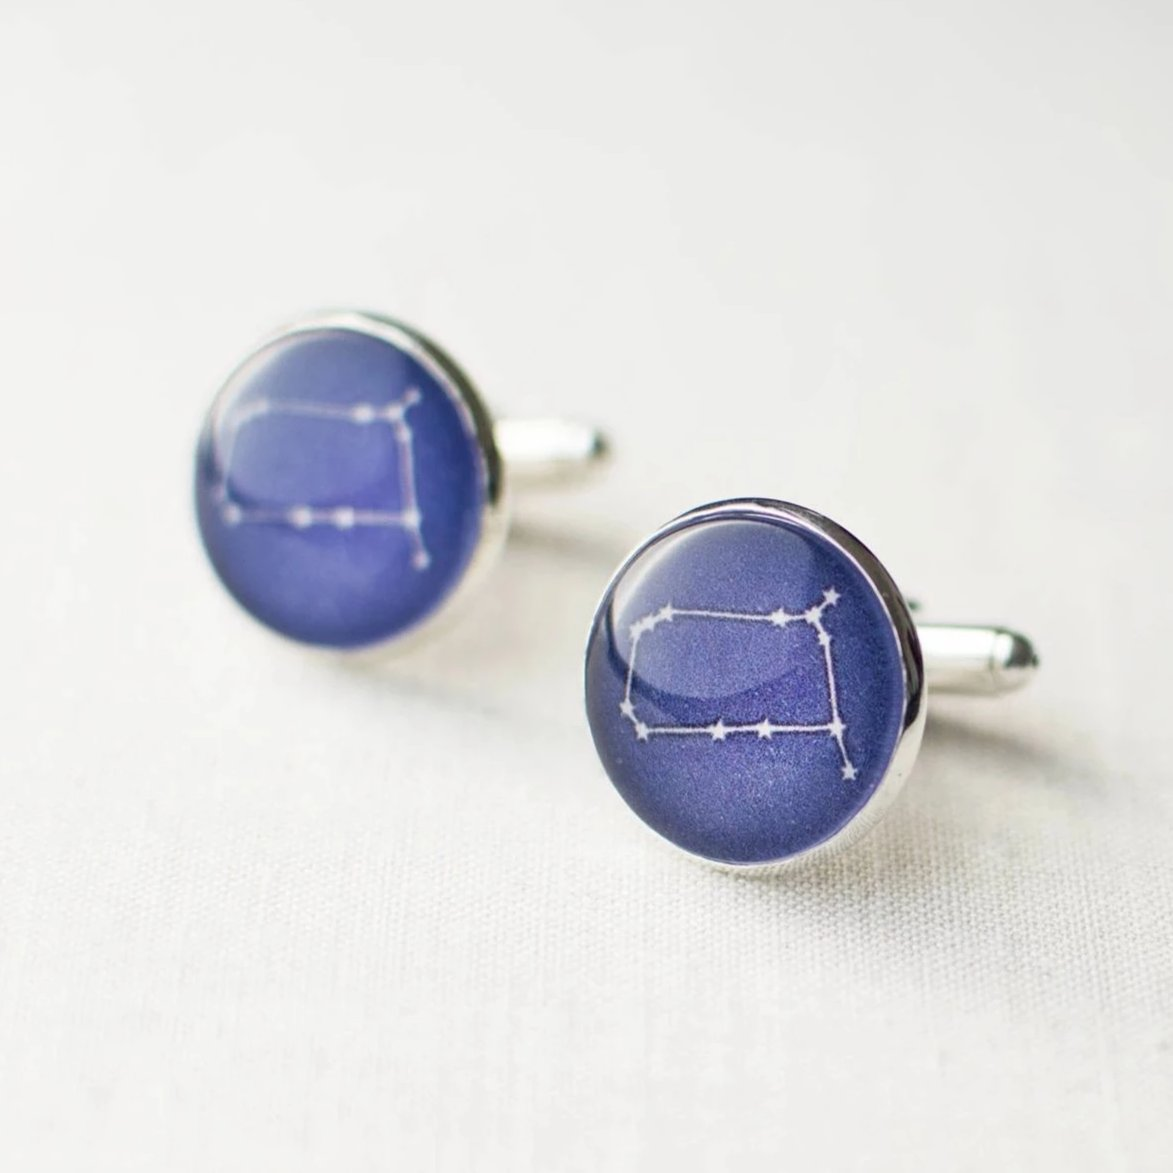 Gemini Constellation Cufflinks